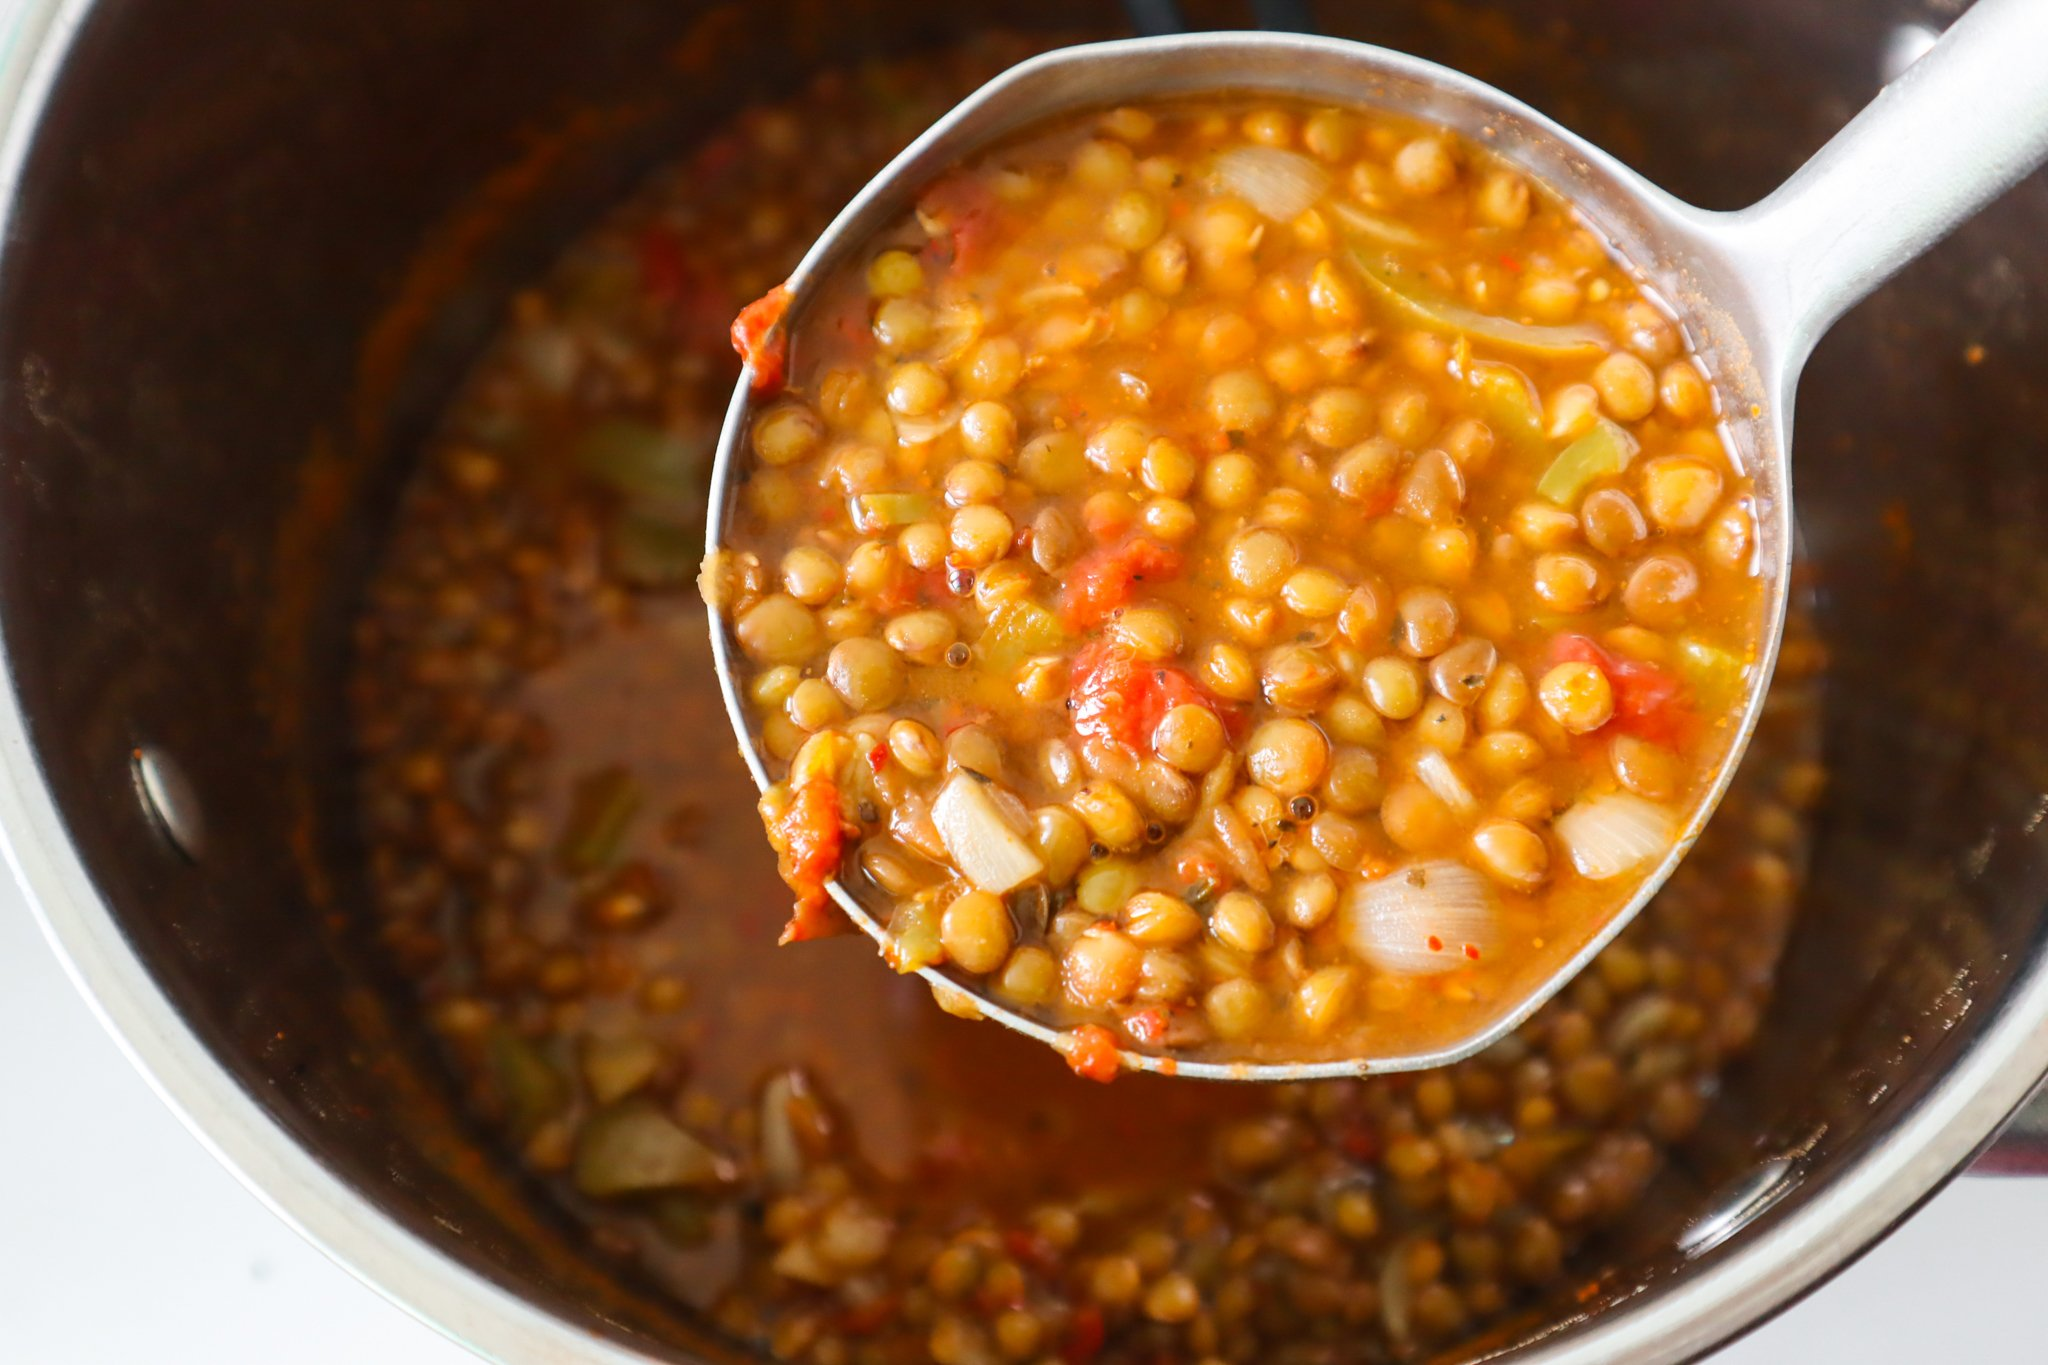 You can make this easy vegan lentil soup recipe in about 30 minutes using simple, healthy ingredients that include dried lentils, tomatoes, peppers and onion! This tasty lentil recipe is a great plant-based meal prep recipe and is low in calories, filling, delicious, gluten free, nut free and soy free.